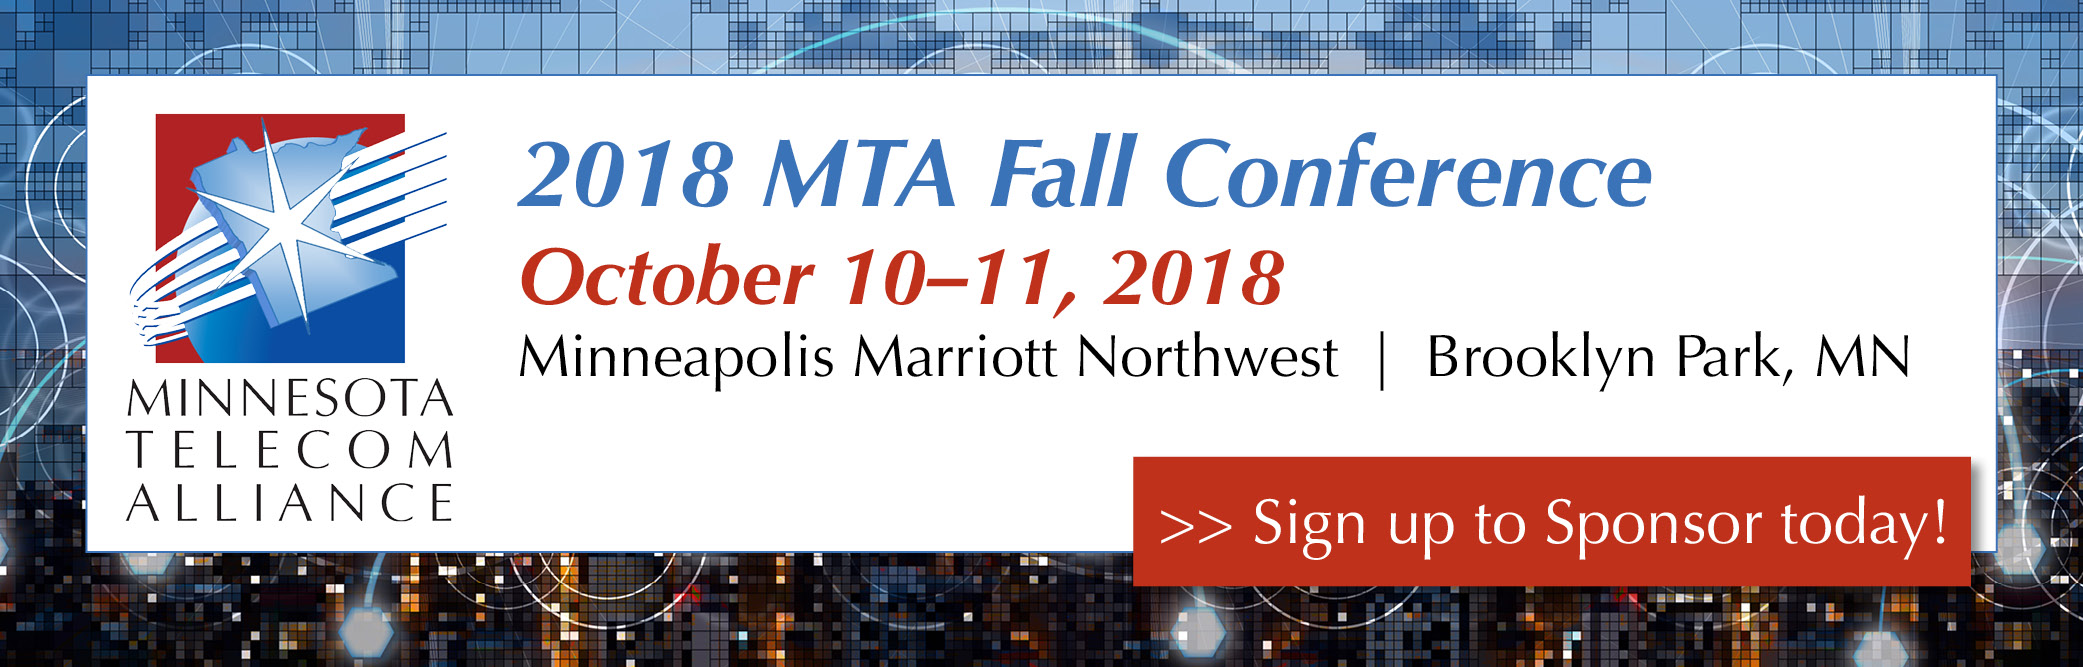 MTA Fall Conference Sponsorship Opportunities